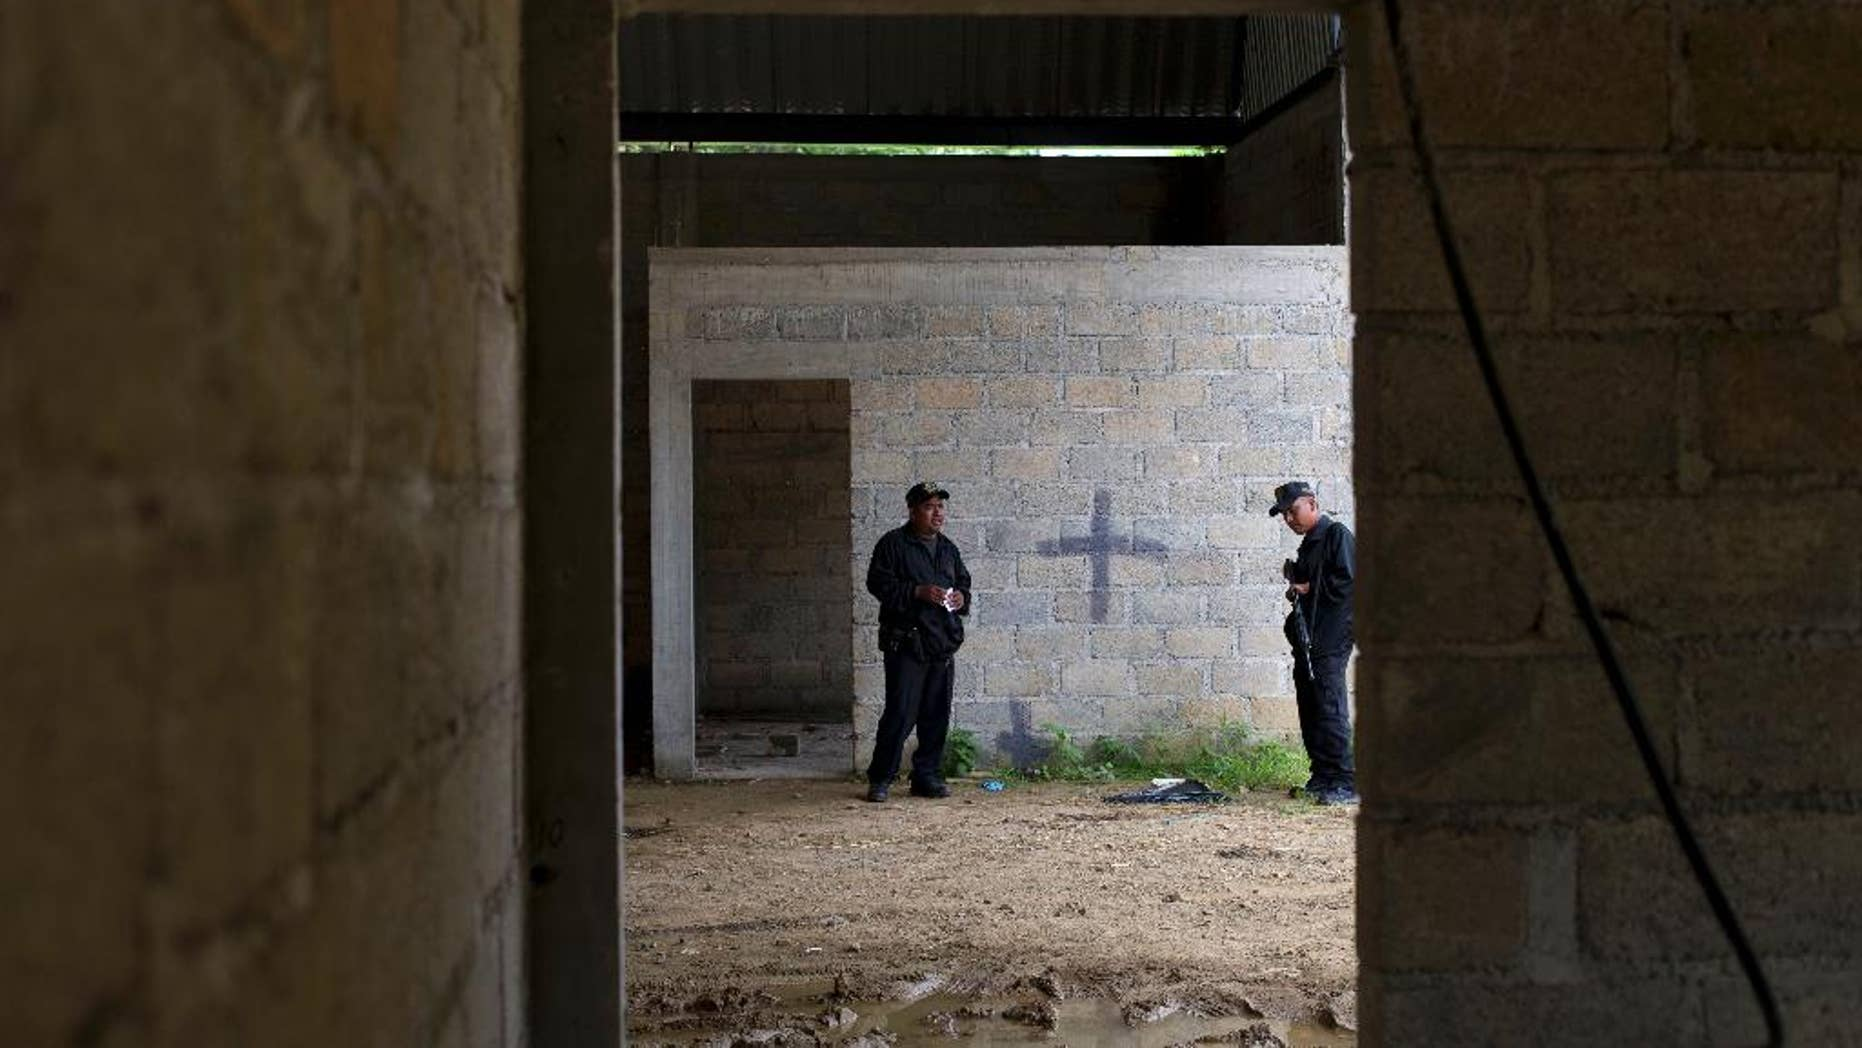 FILE - In this July 3, 2014, file photo, state police stand inside a warehouse where a black cross covers a wall near blood stains on the ground, after a shootout between Mexican soldiers and alleged criminals on the outskirts of the village of San Pedro Limon, in Mexico state, Mexico. Officials said Sunday Nov. 1, 2014, that seven Mexican soldiers have been charged with crimes ranging from homicide to improper conduct in connection with the shooting deaths of suspected gang members at a rural warehouse on June 30. (AP Photo/Rebecca Blackwell, File)